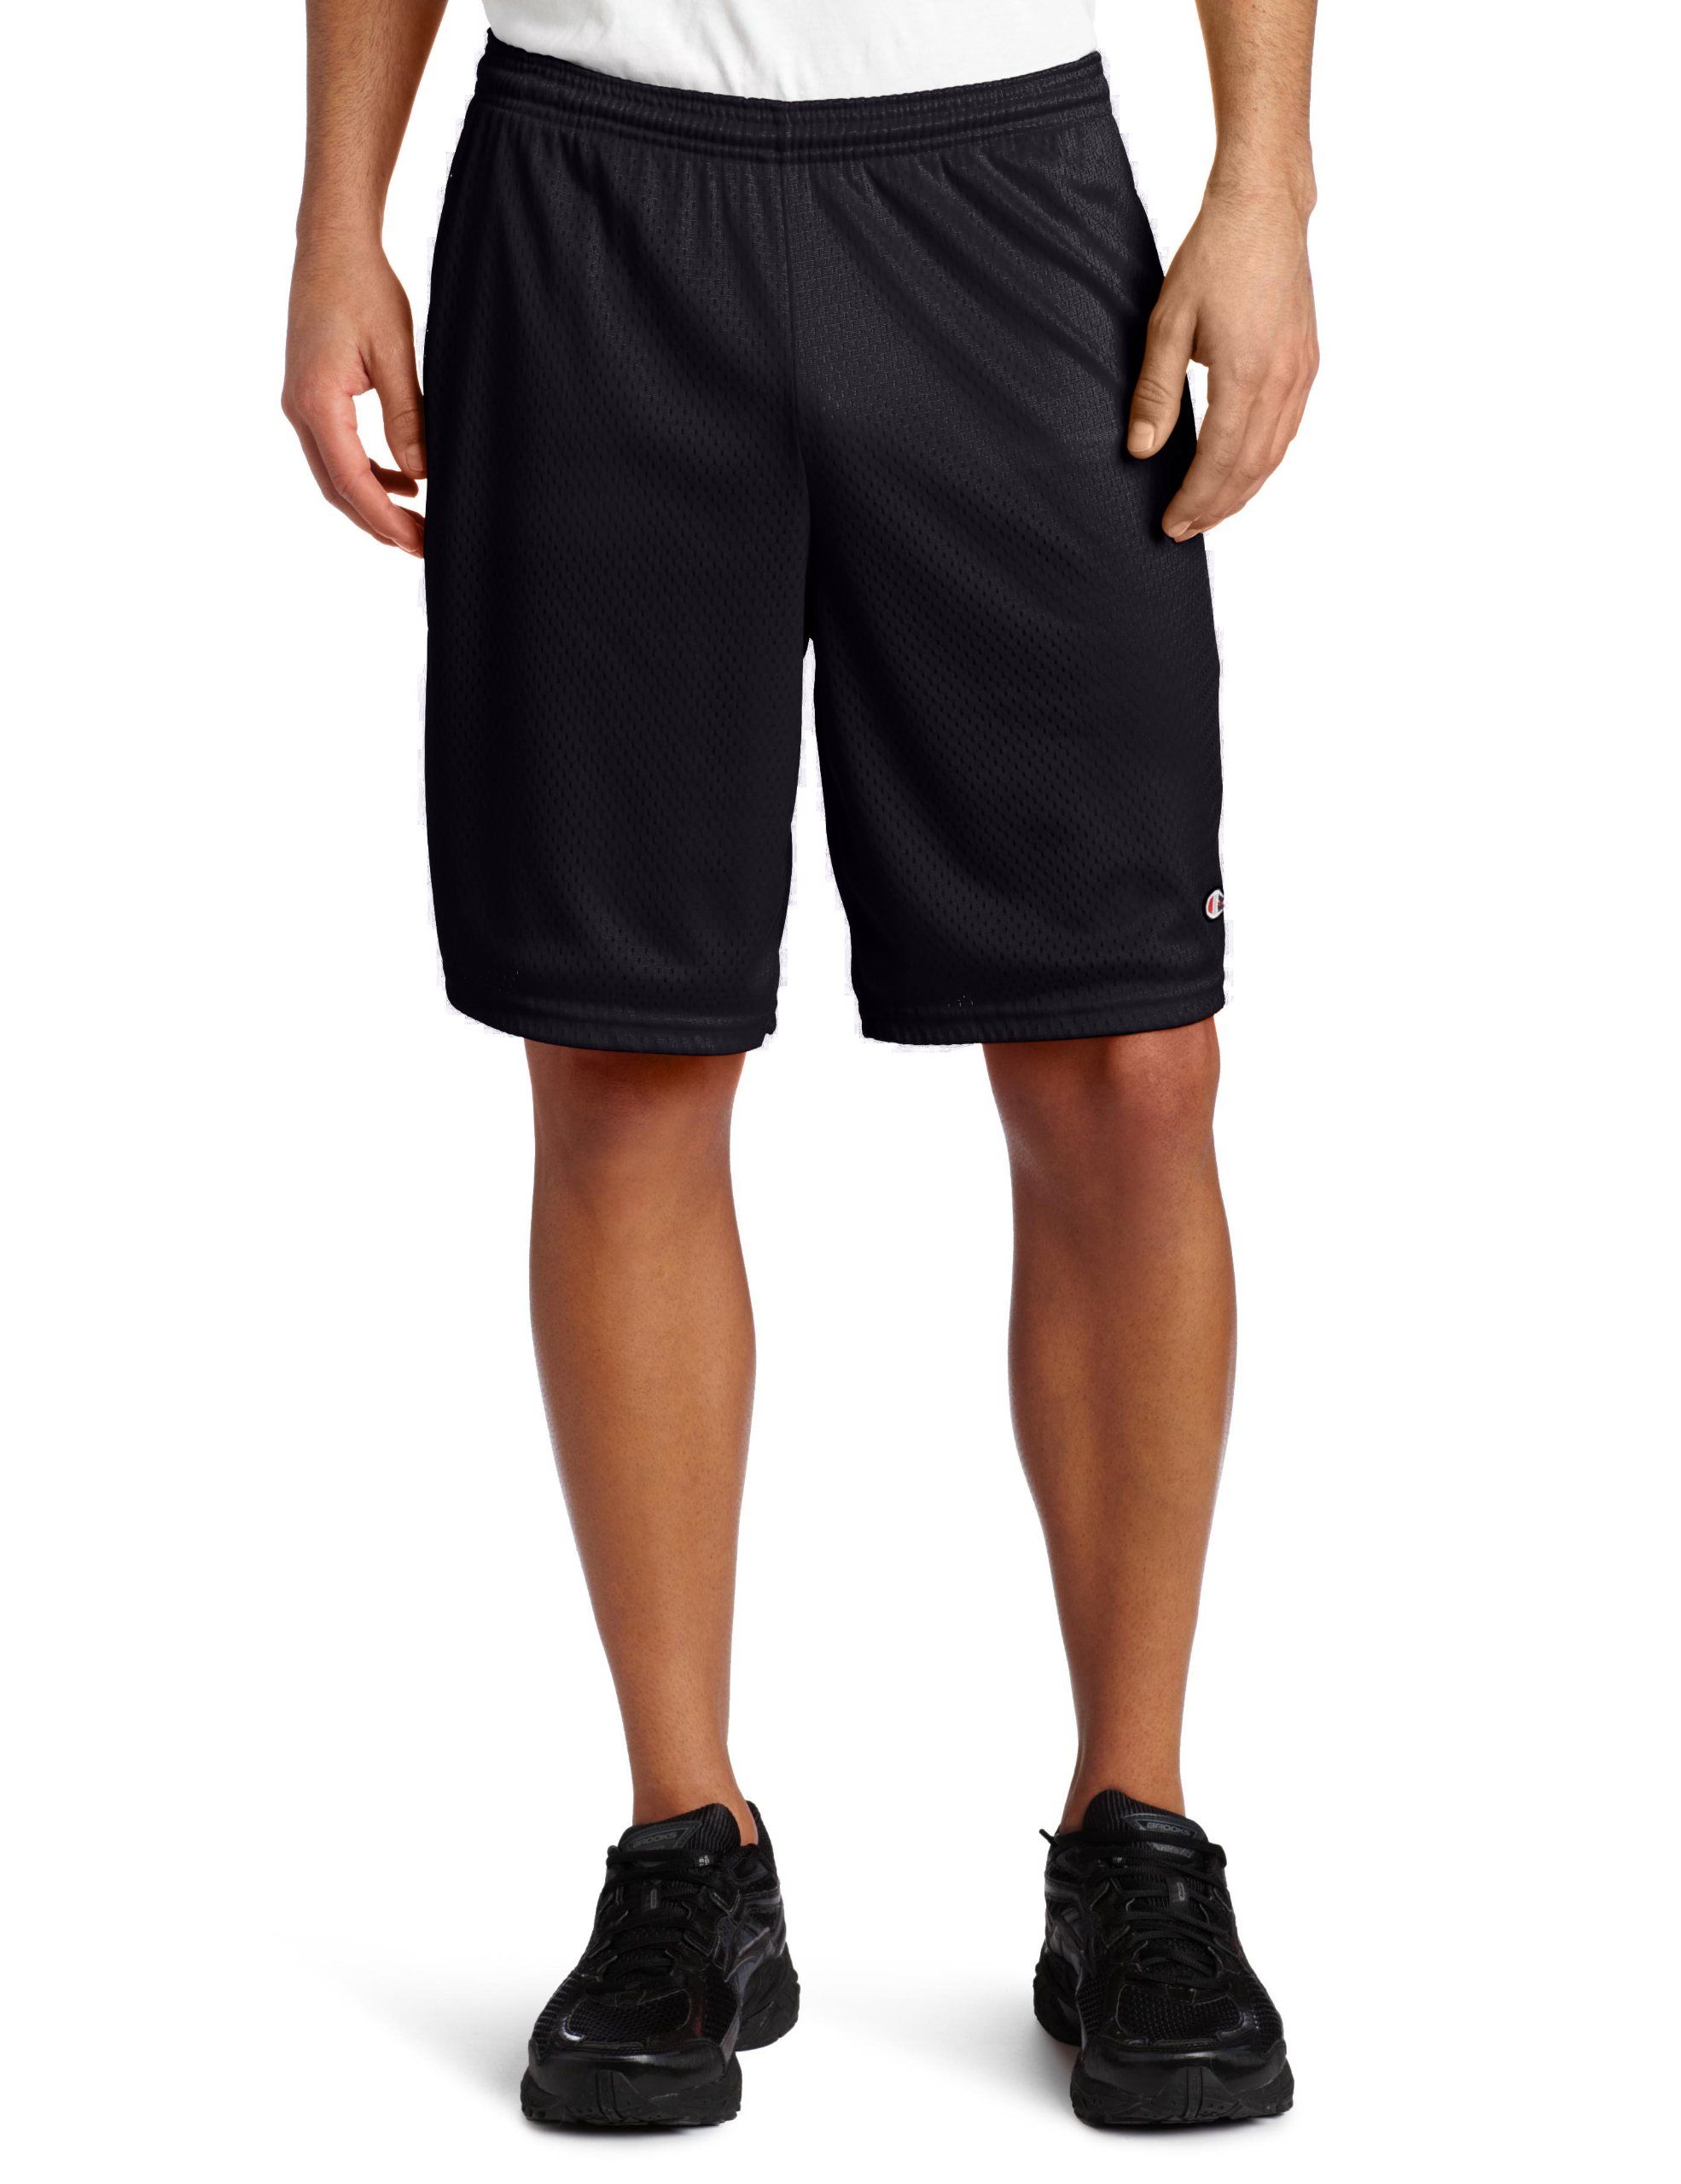 Champion Men's Long Mesh Short With Pockets,Black,LARGE